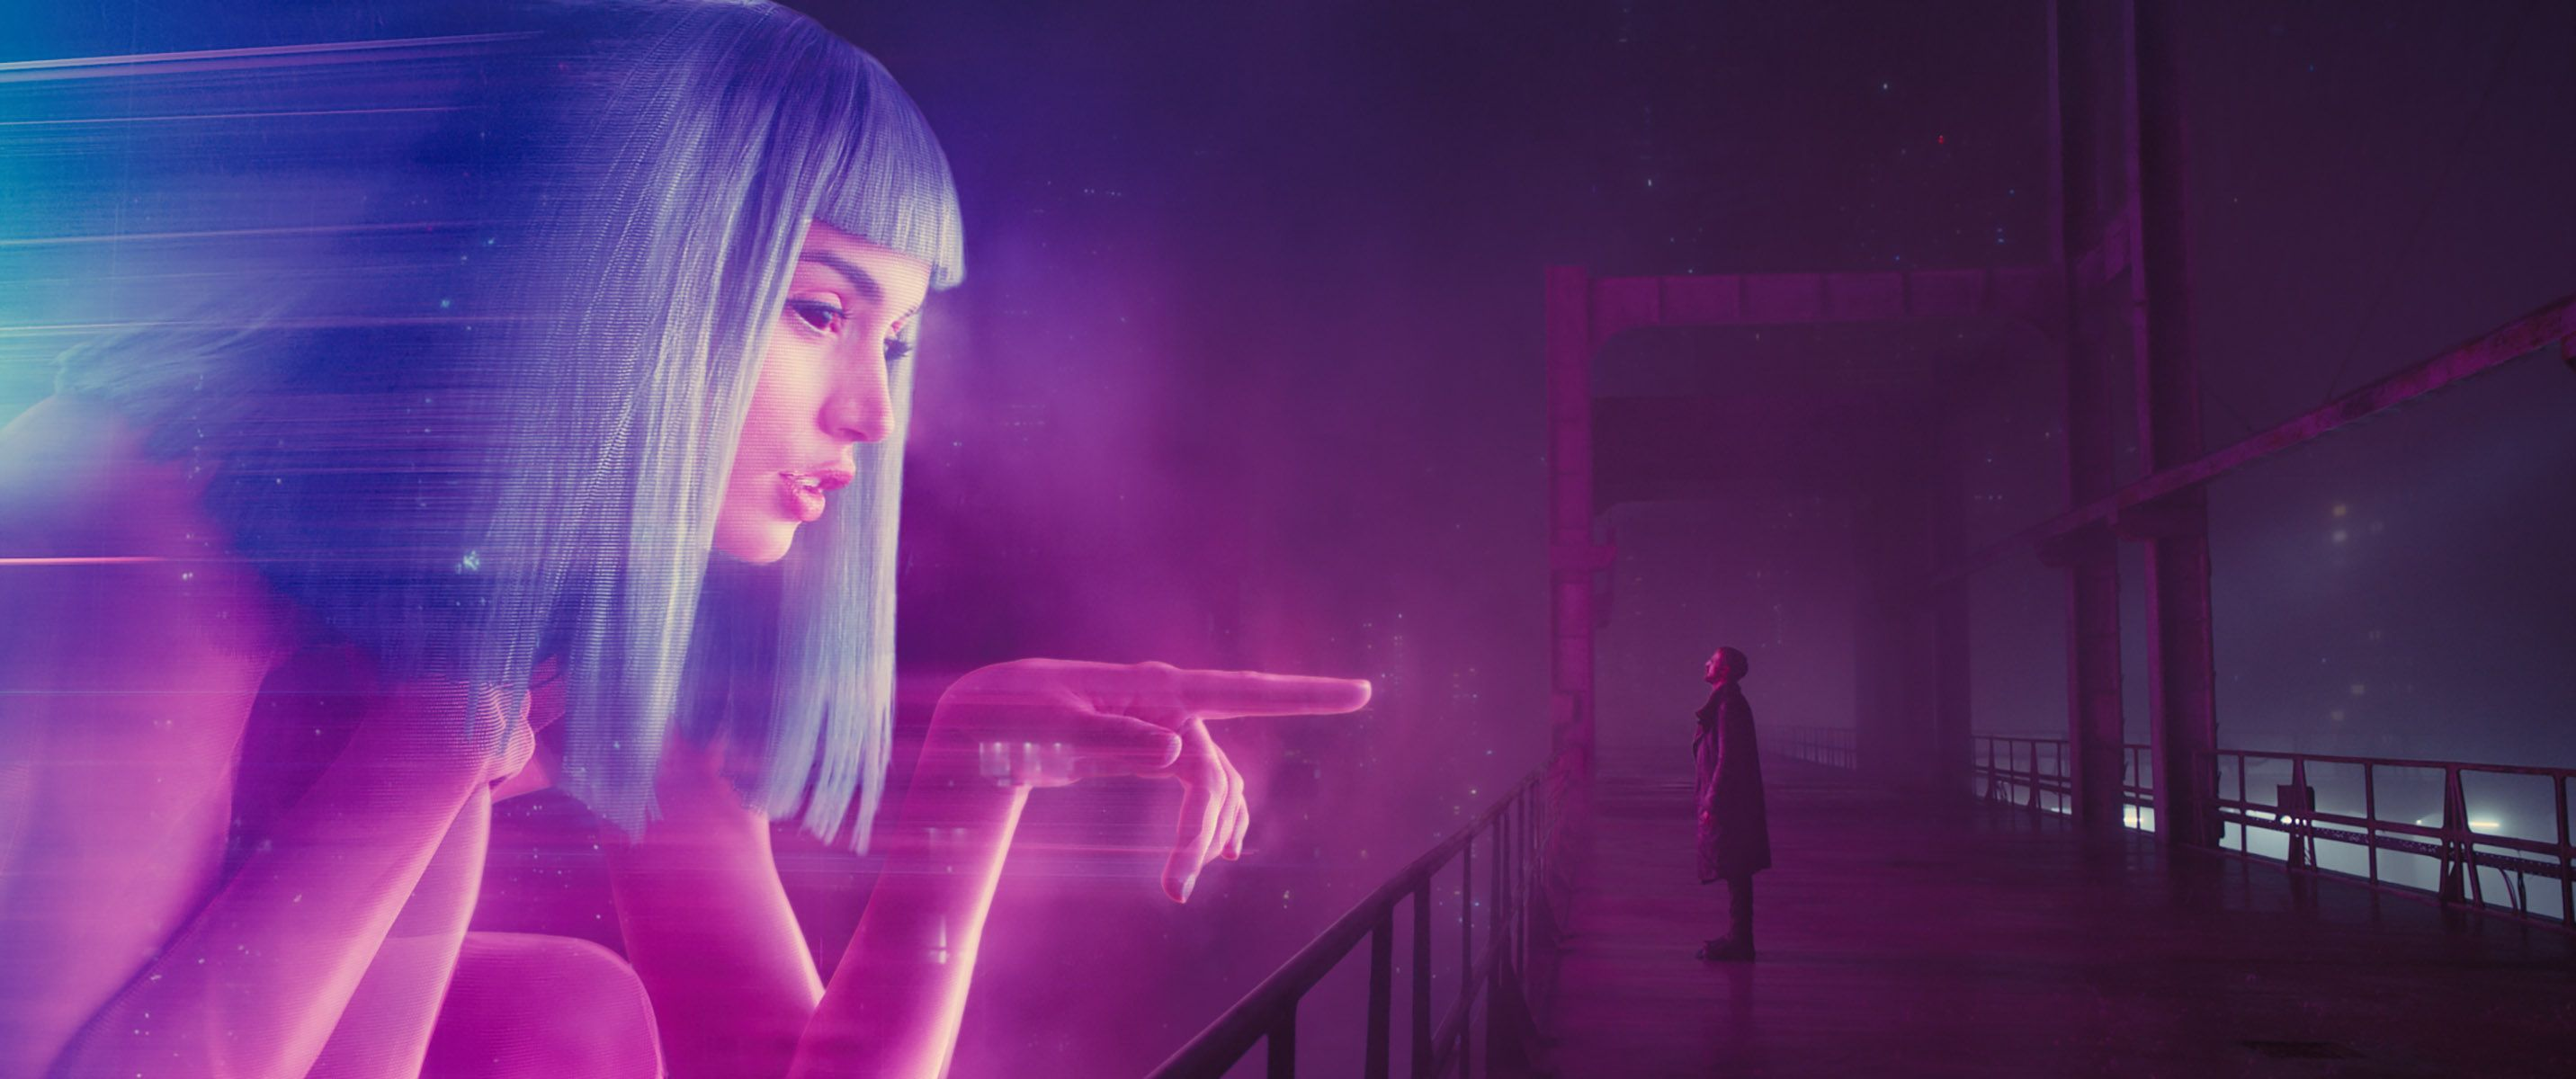 'Blade Runner 2049' is coming, and it's gorgeous